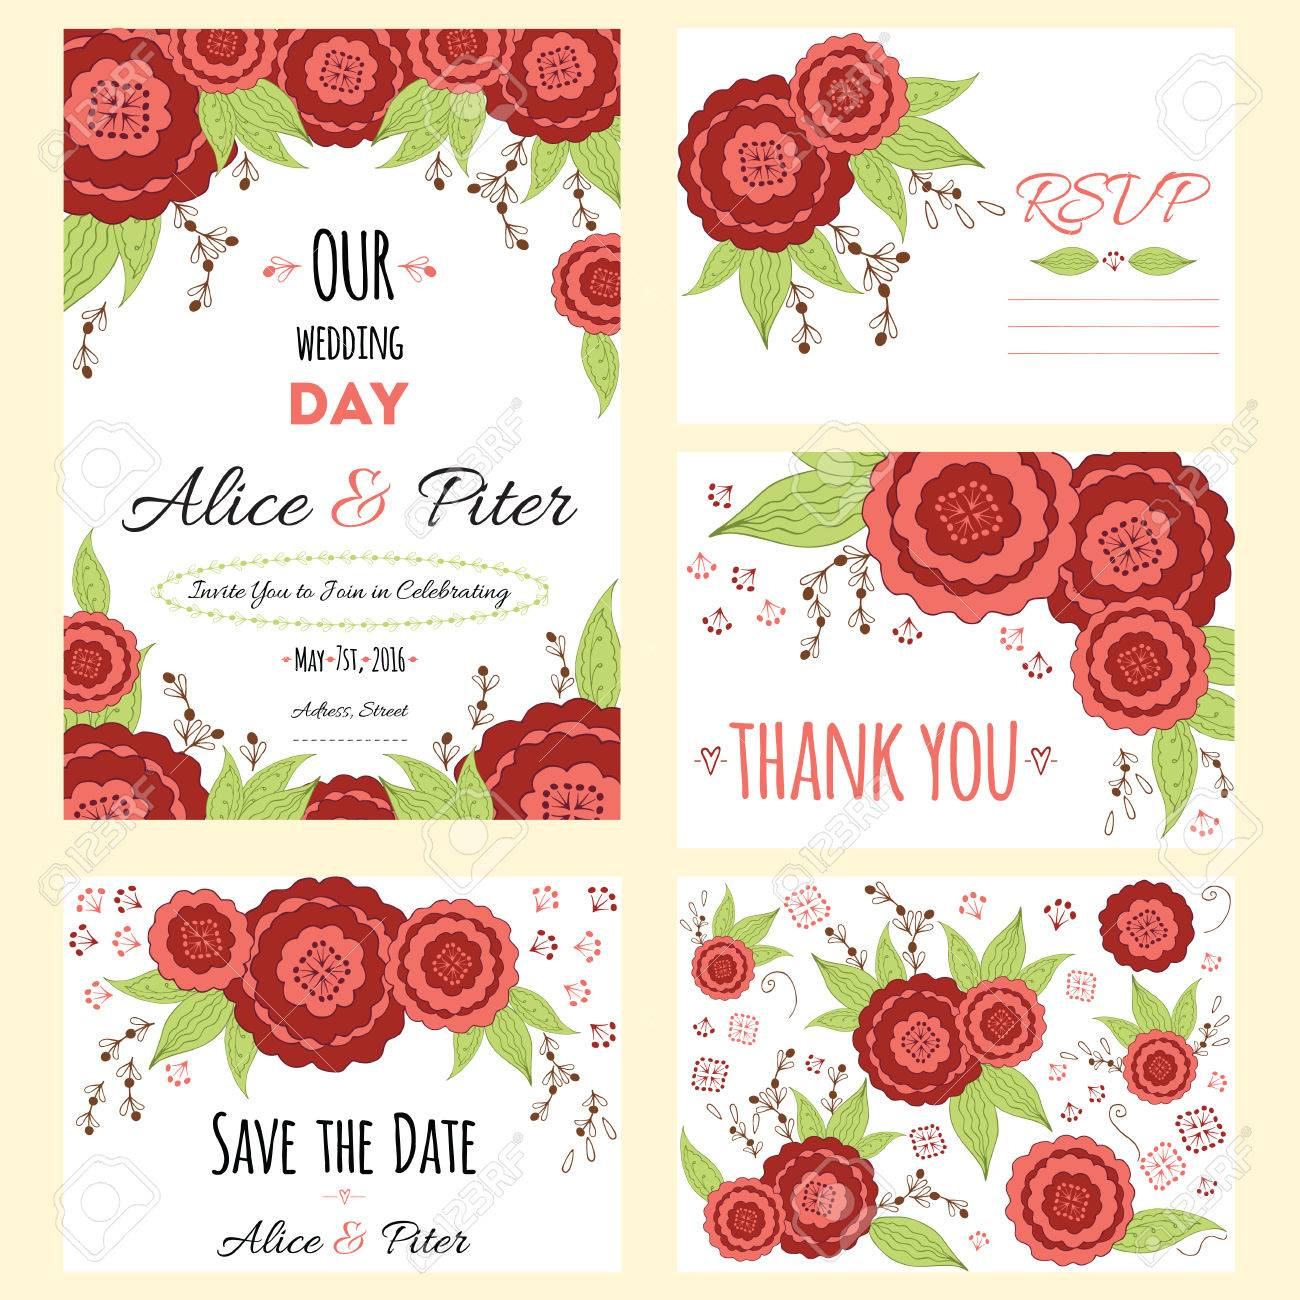 Thank You Letter For Marriage Invitation Gallery - Letter Format ...